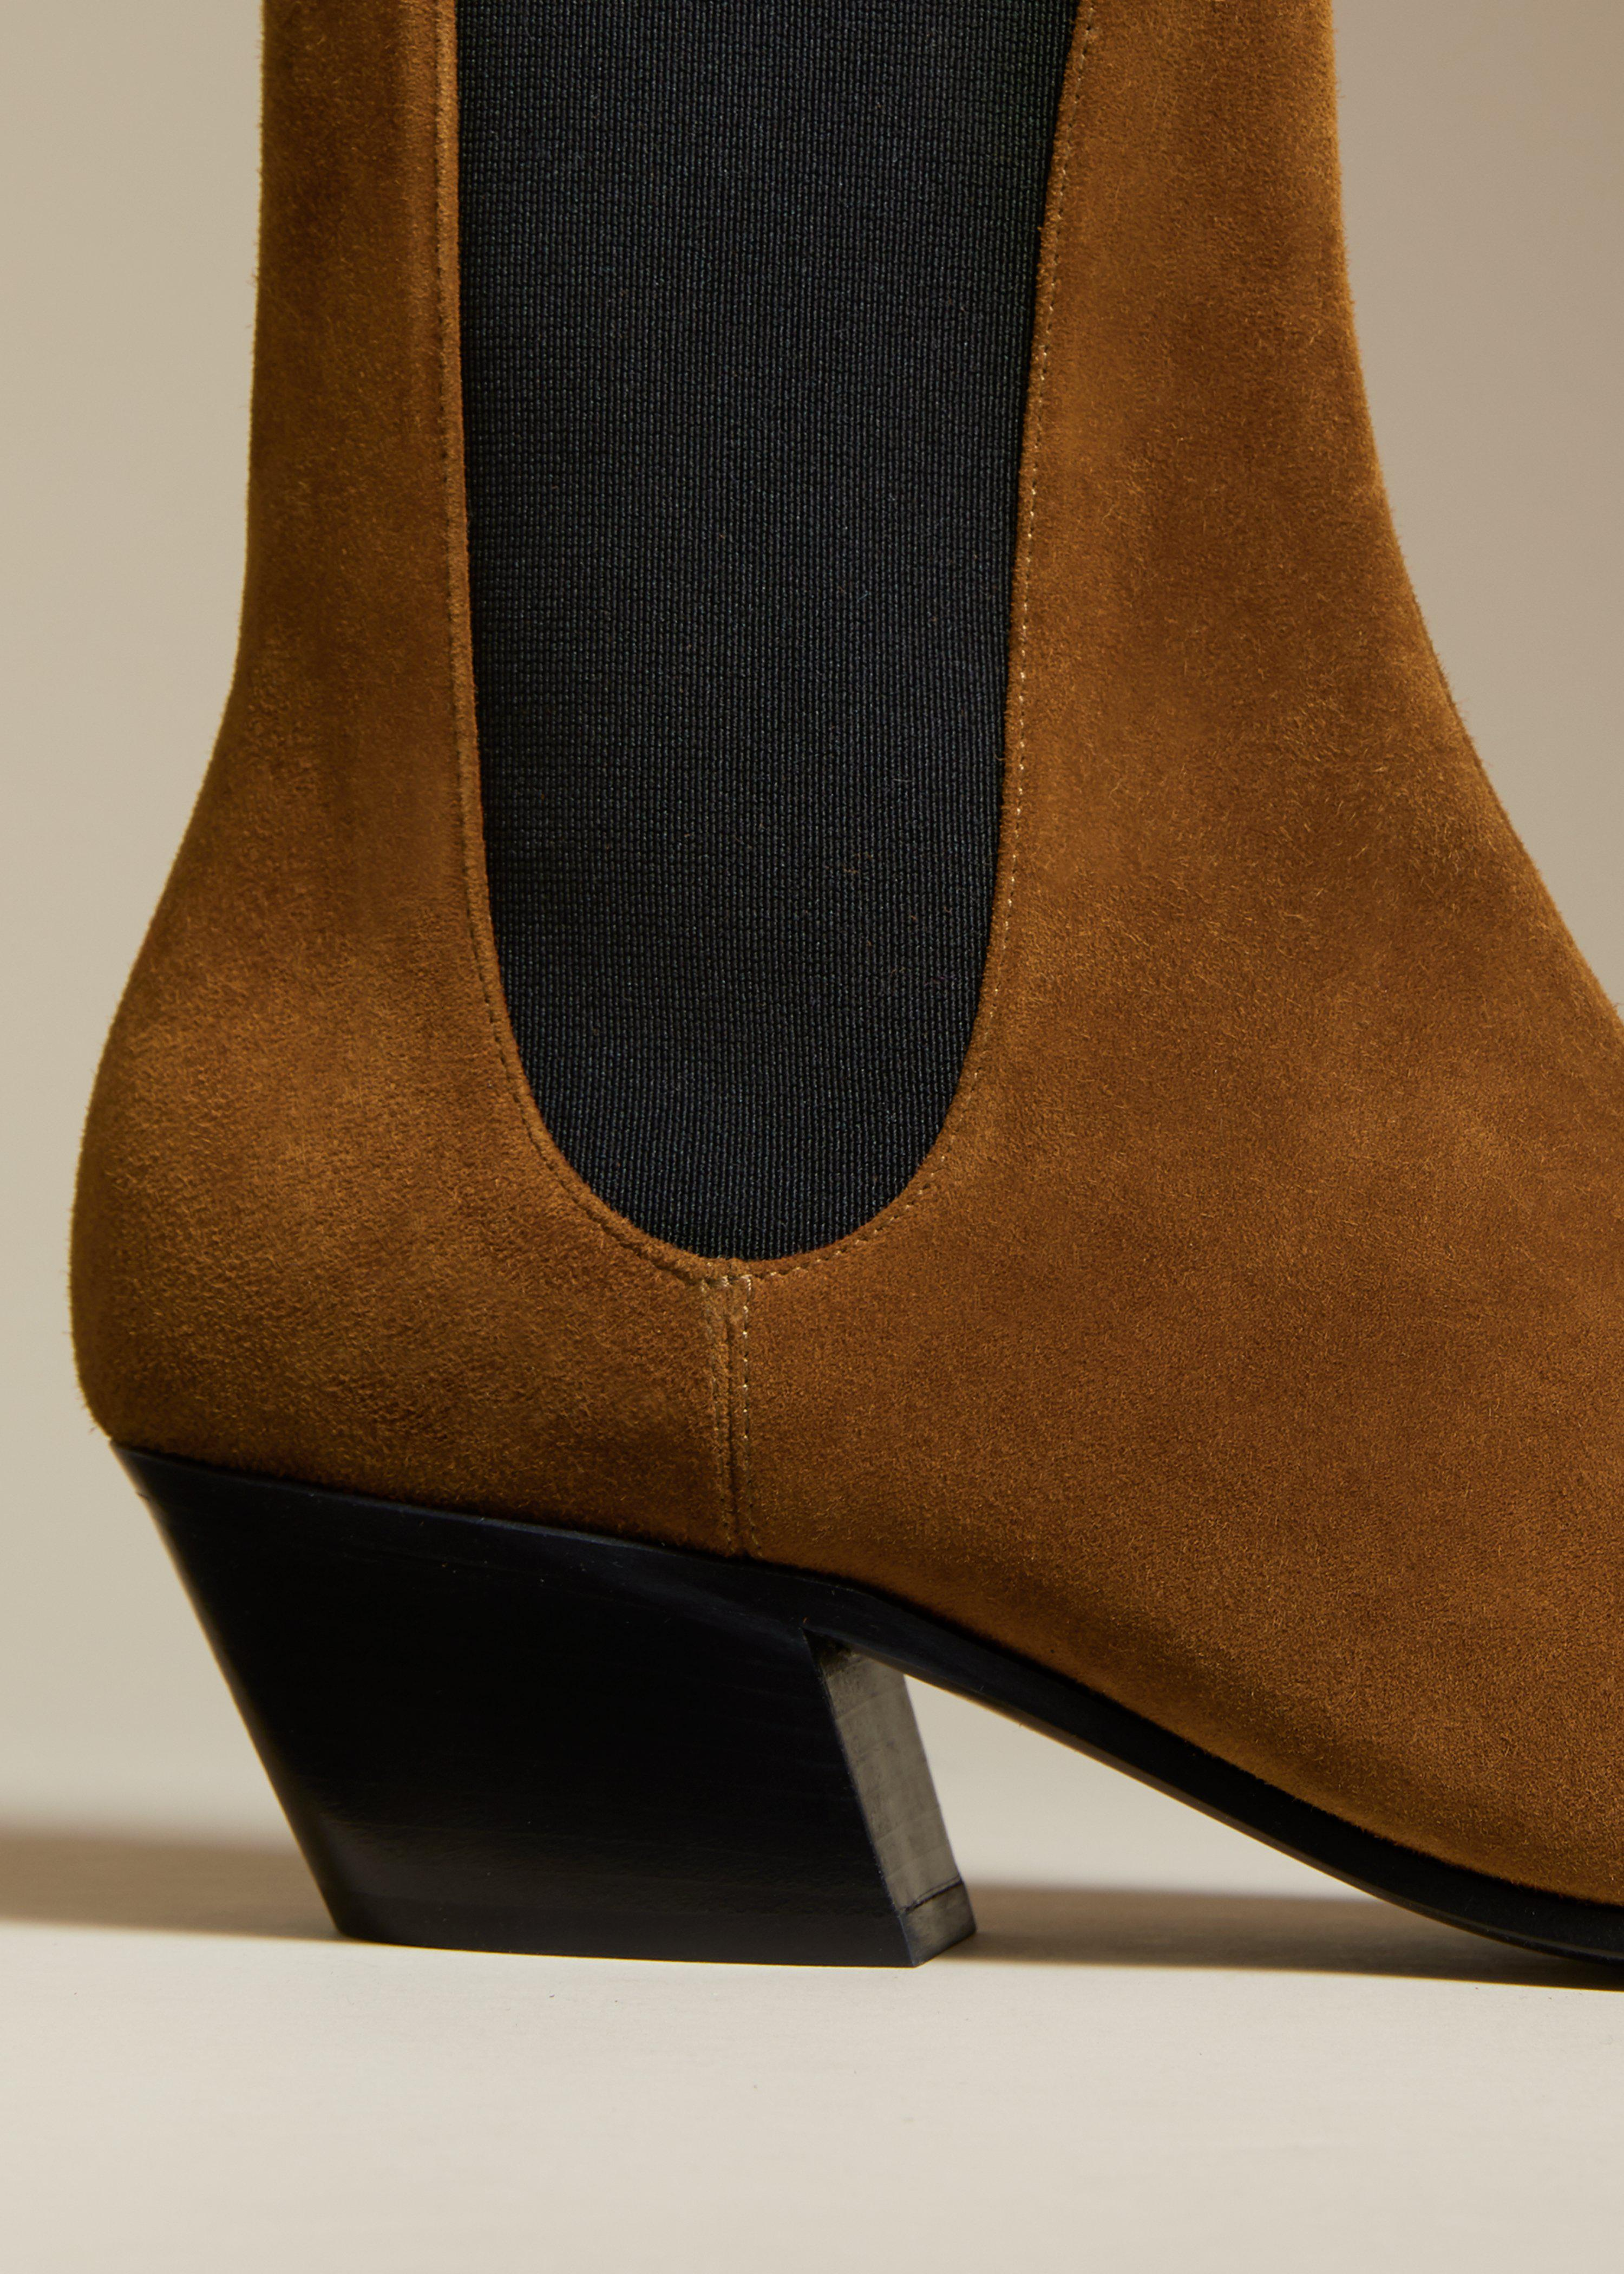 The Saratoga Boot in Caramel Suede 3